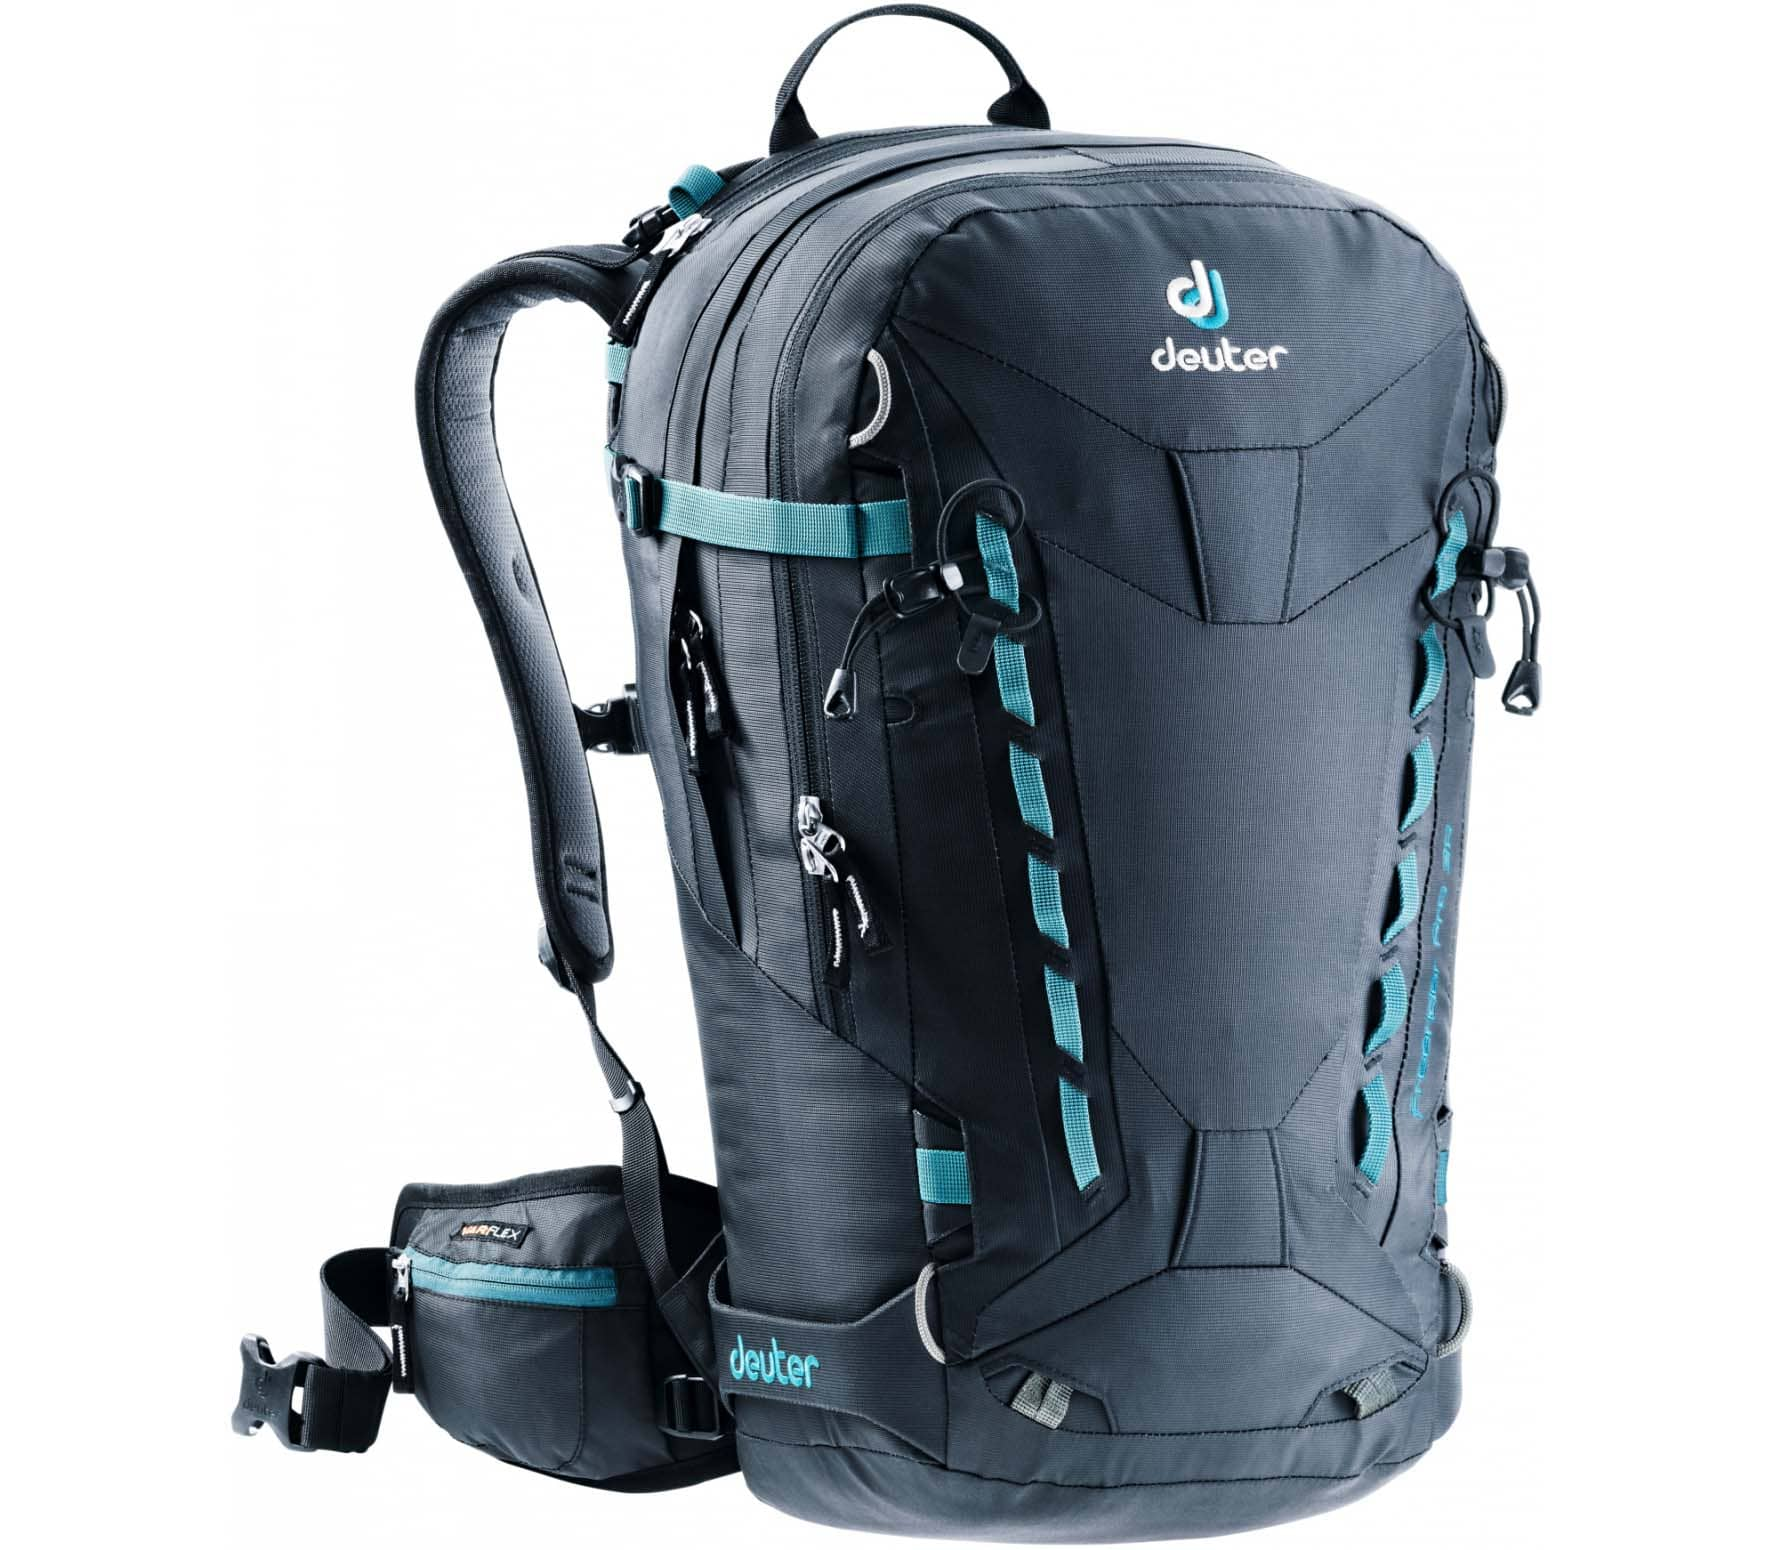 Deuter - Freerider Pro 30 skis backpack (black)